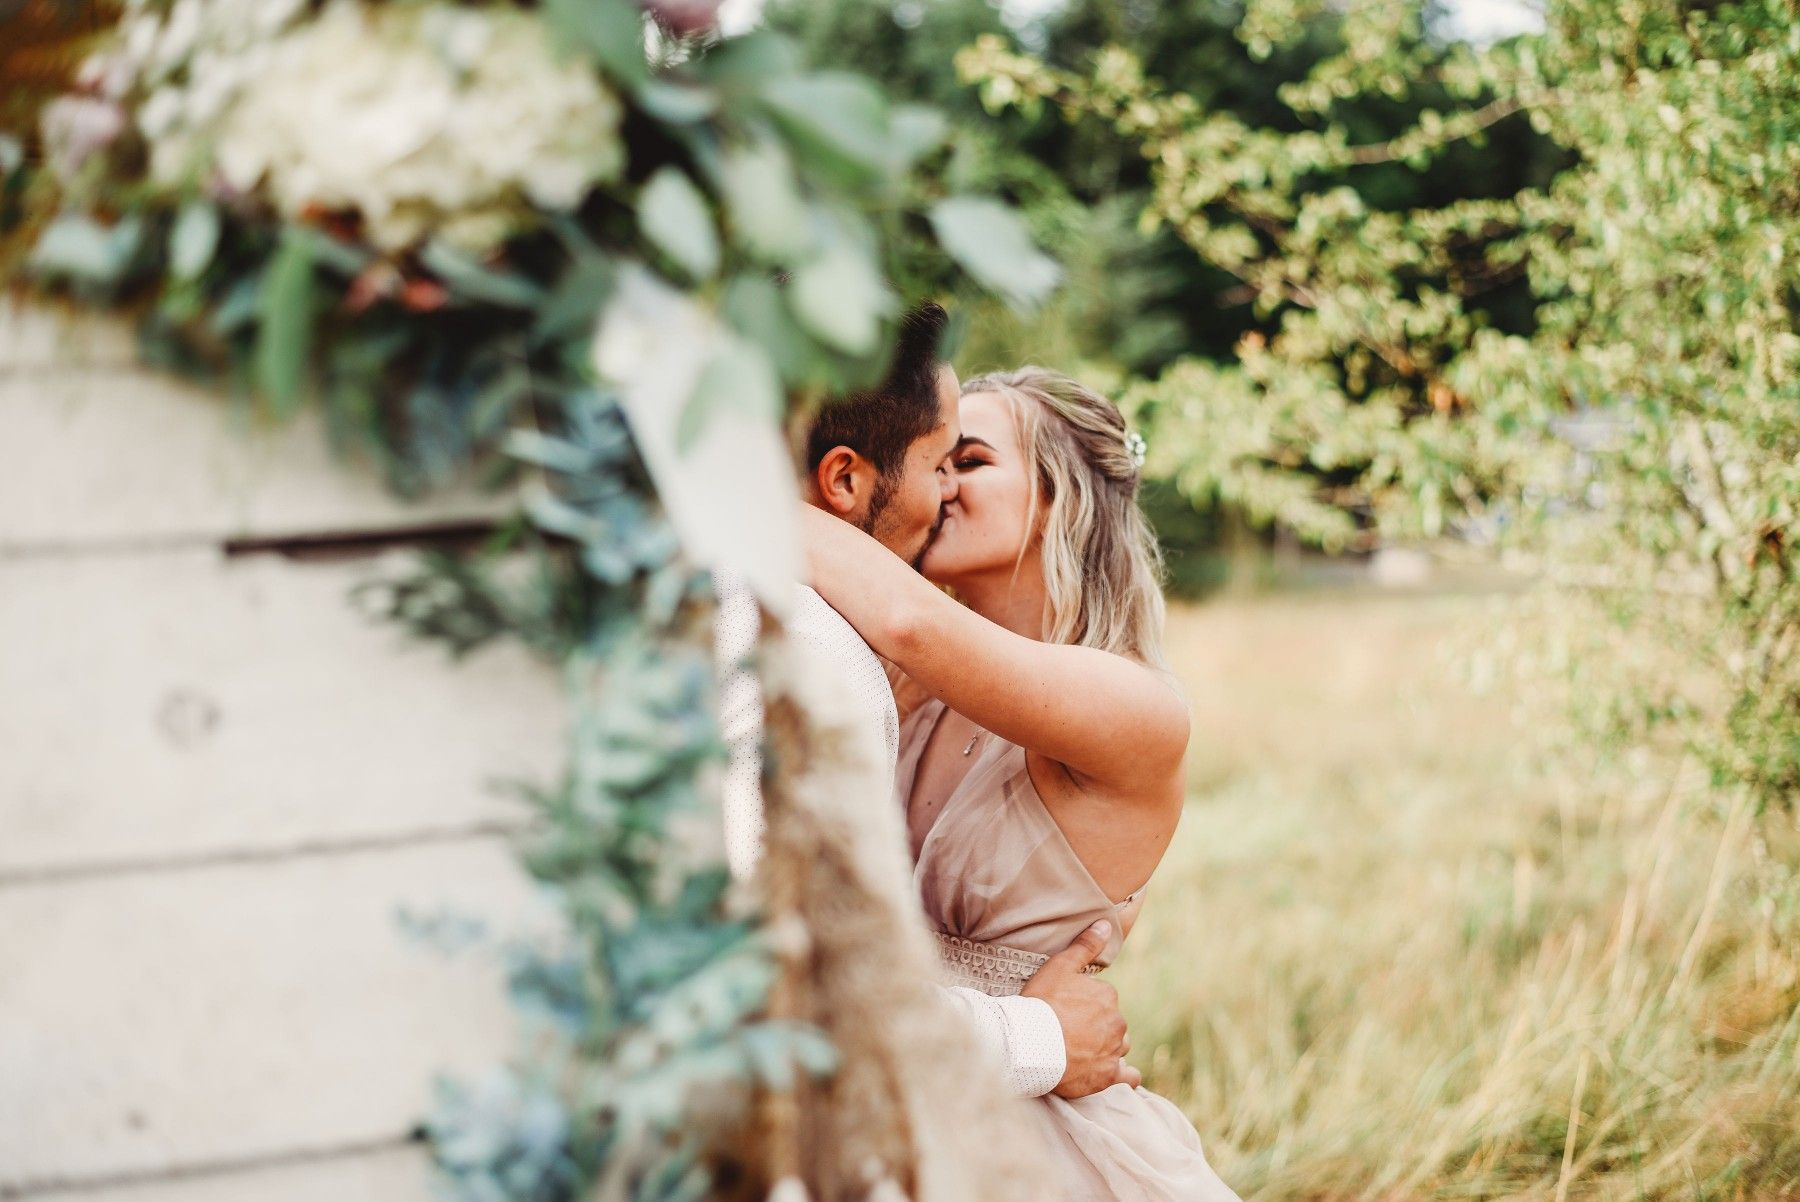 Pin by Наталія on Фотосесія | Couple photos, Scenes, Photo